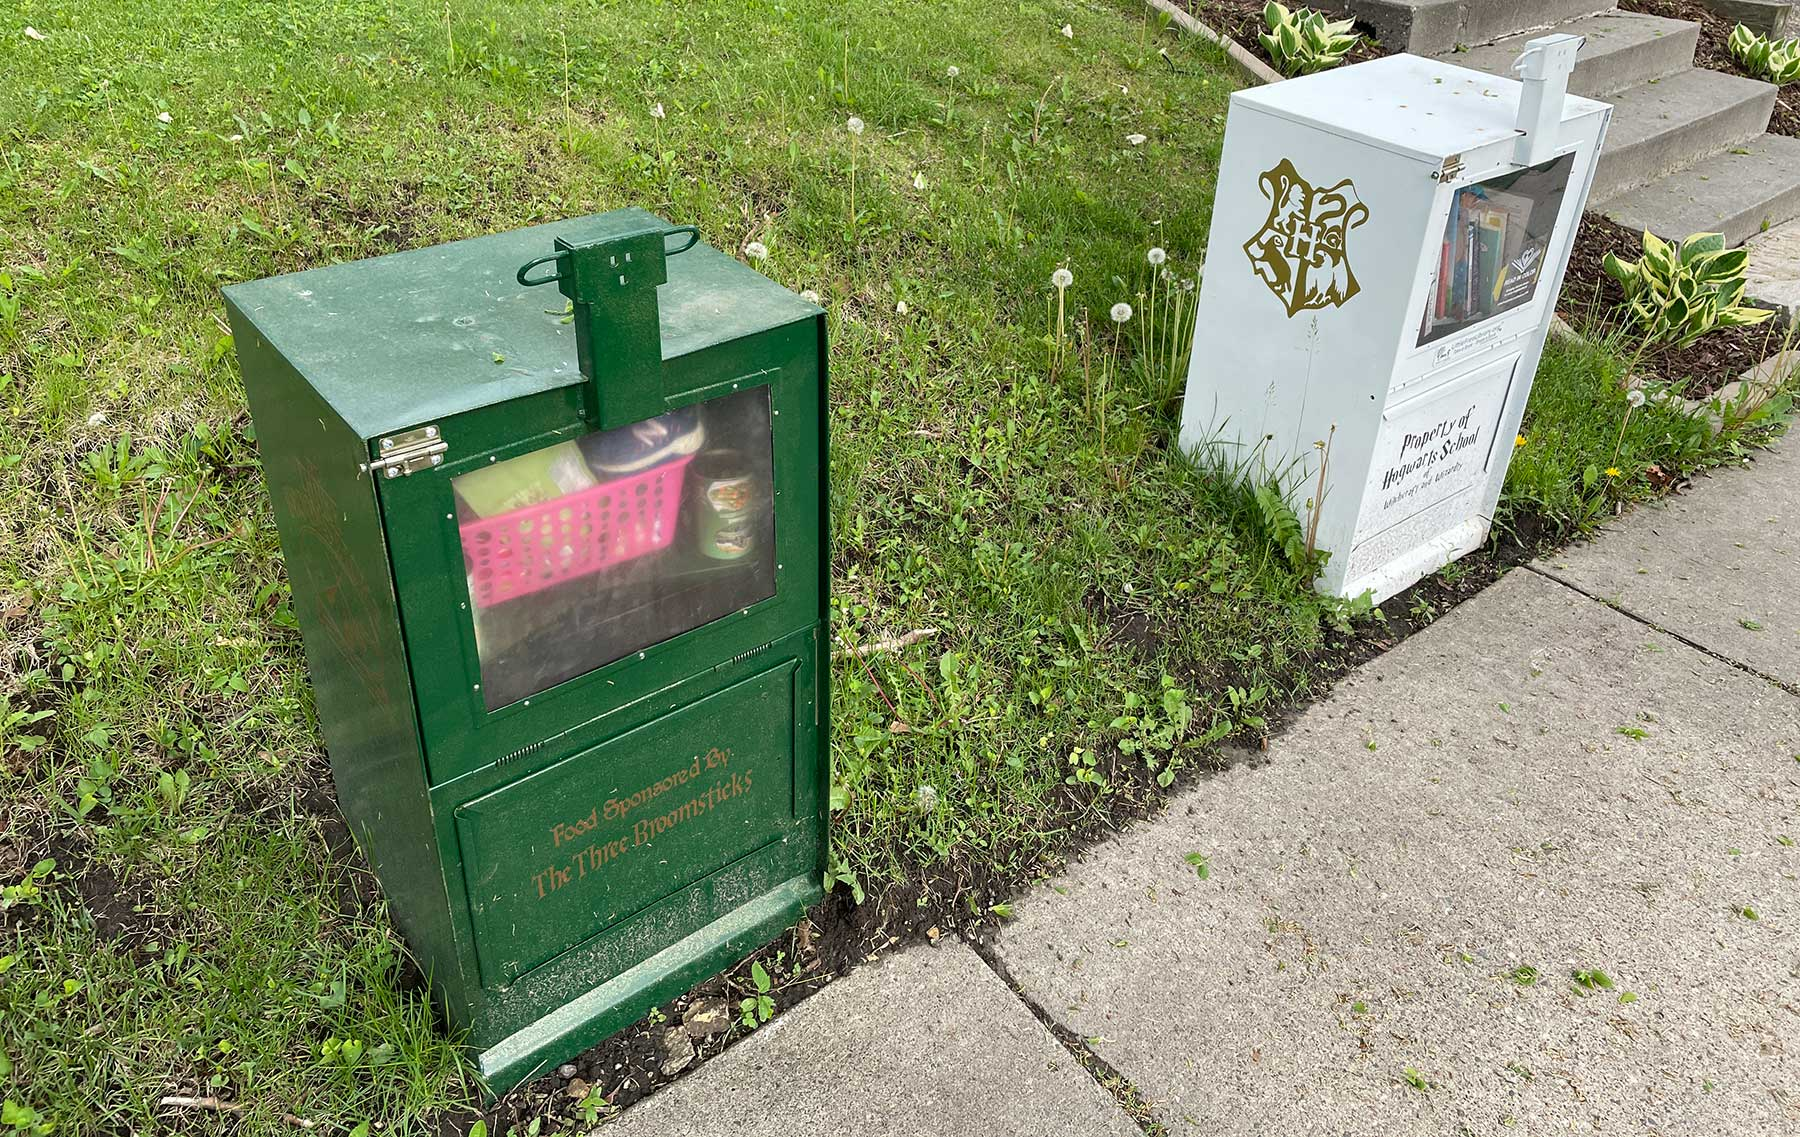 Harry Potter Little Free Libraries in West St. Paul